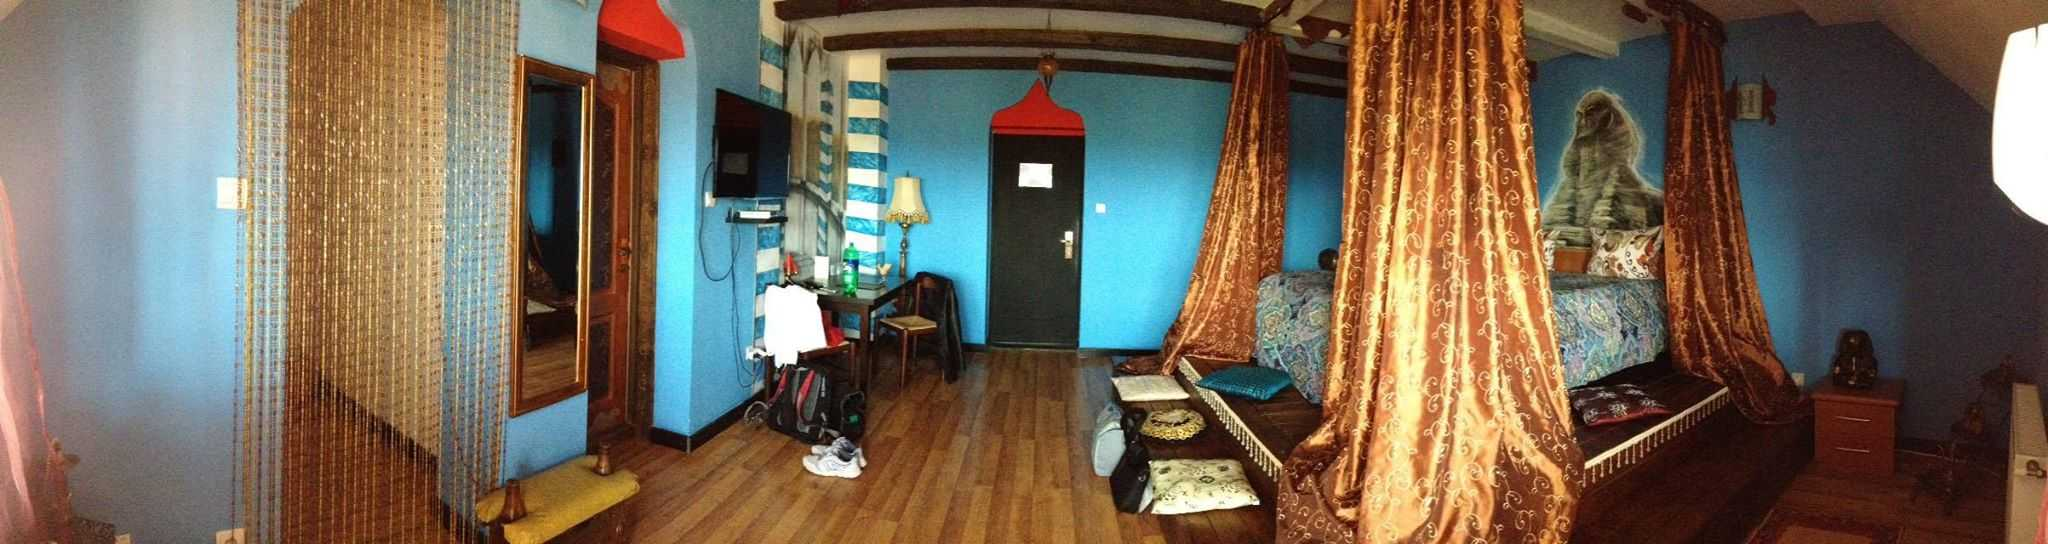 egyptian prince room at Castelul Lupilor